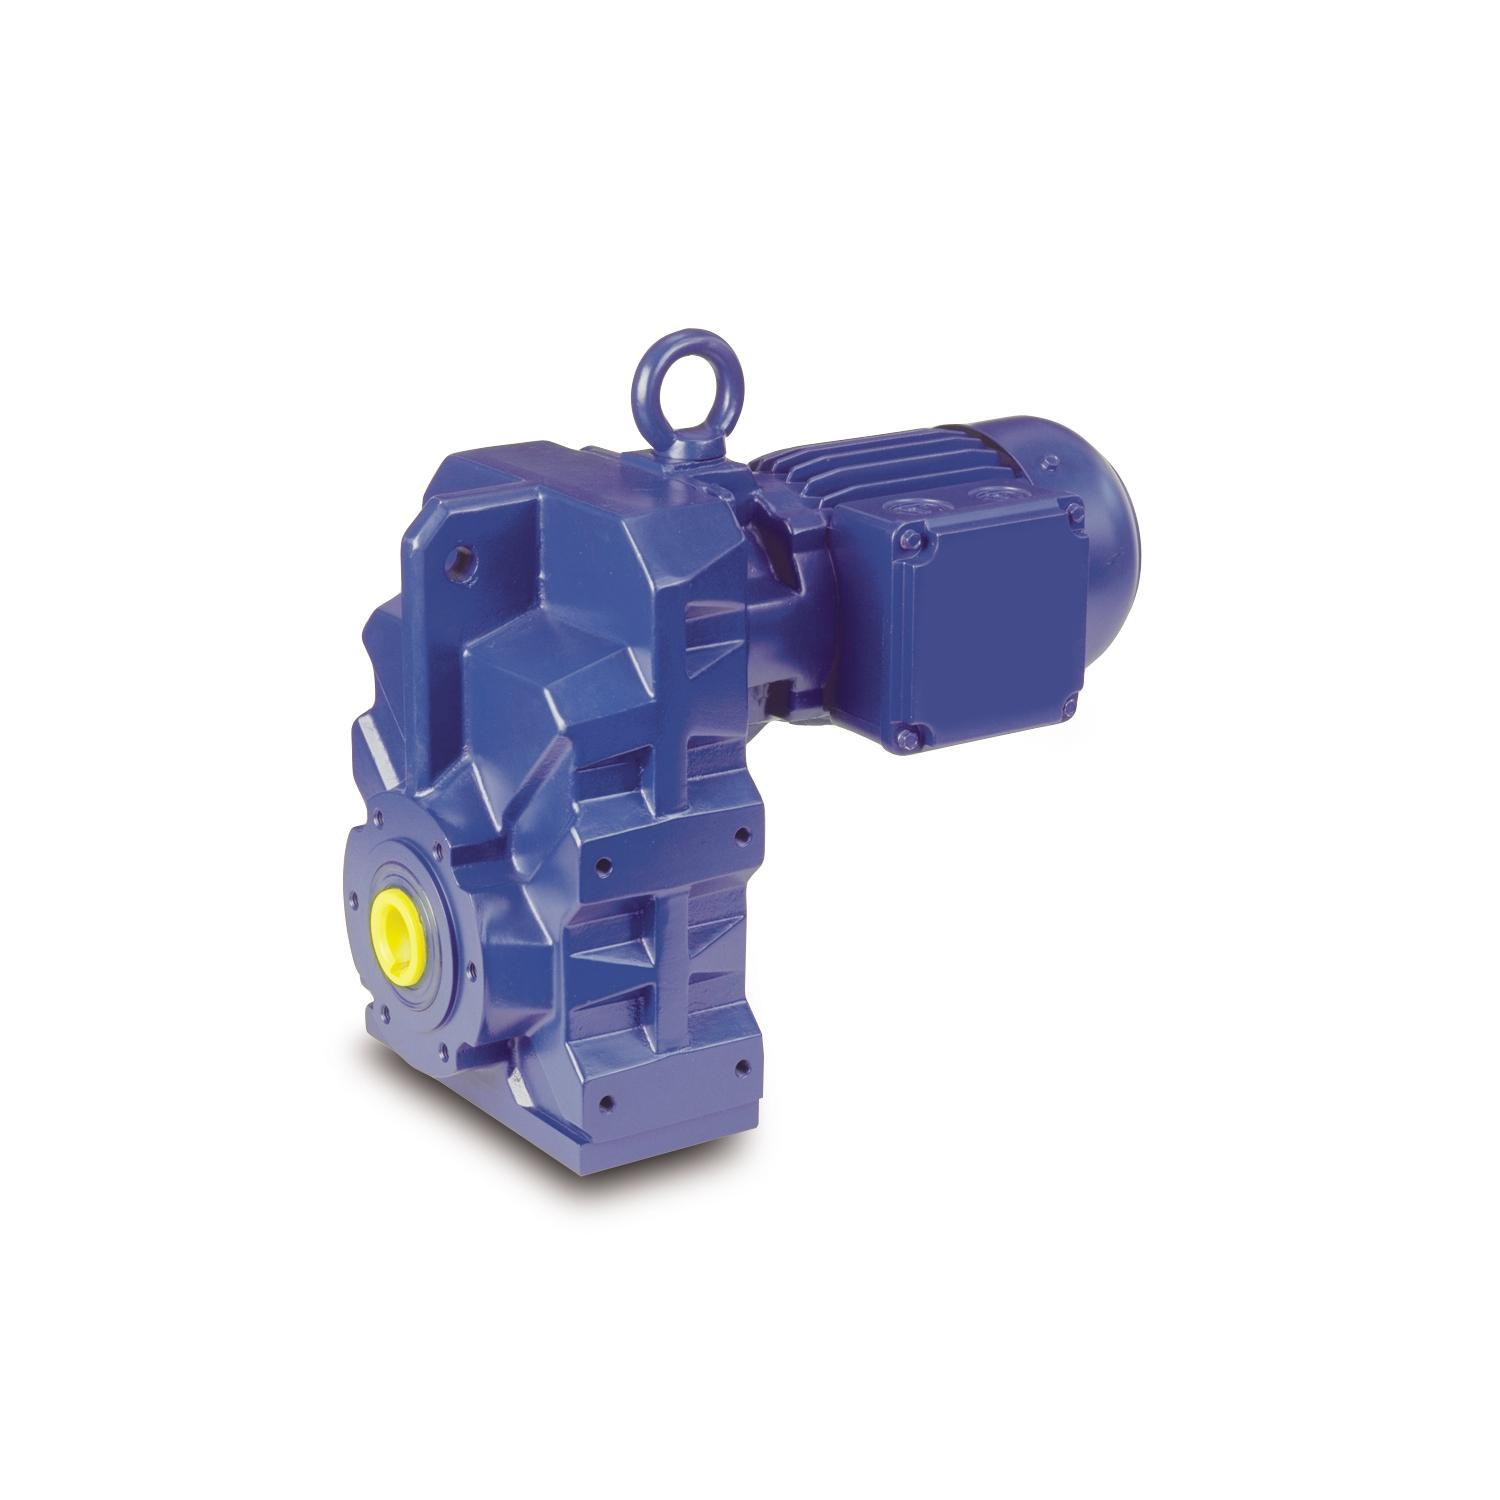 The BF Series complies with many international standards which certify it as suitable for use in marine applications